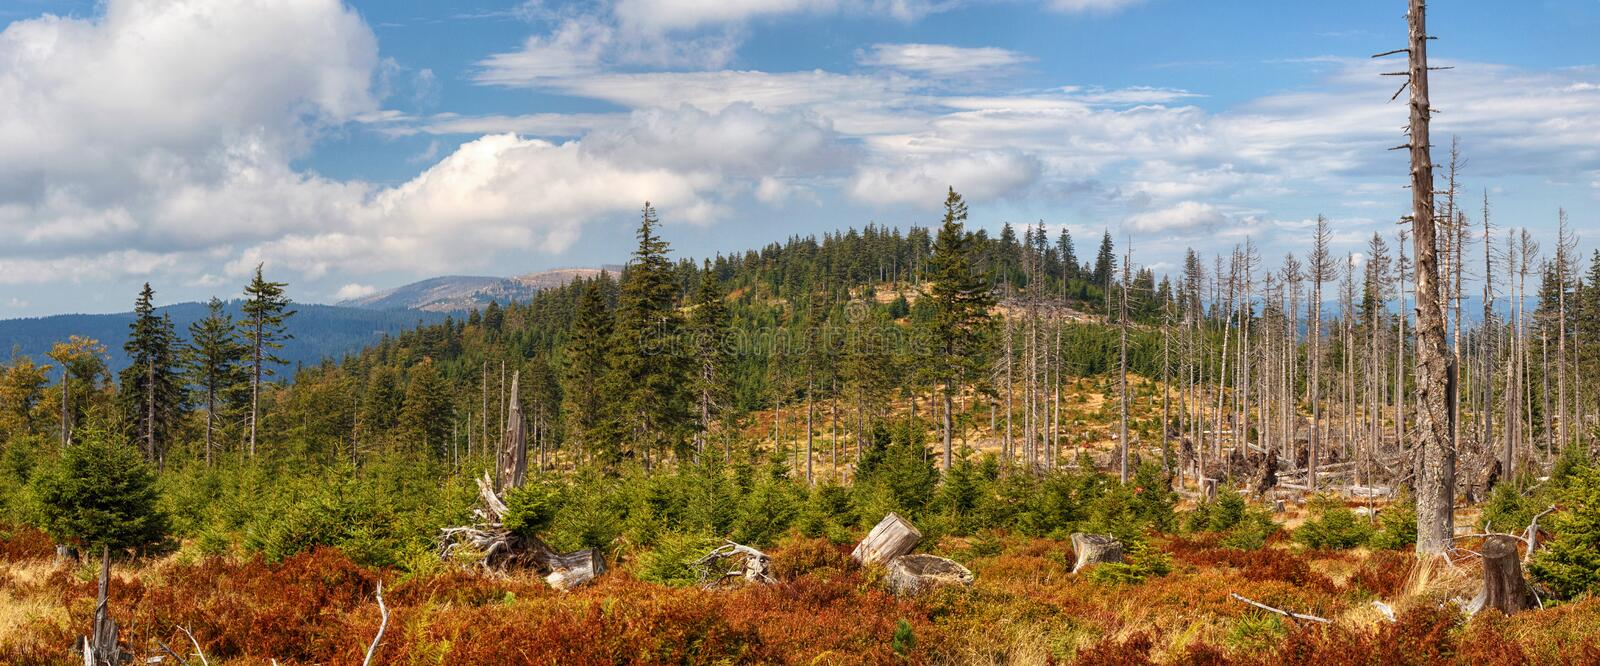 Landscape - dead and fallen trees and growing young living trees spruce, Bohemian Forest Sumava royalty free stock image